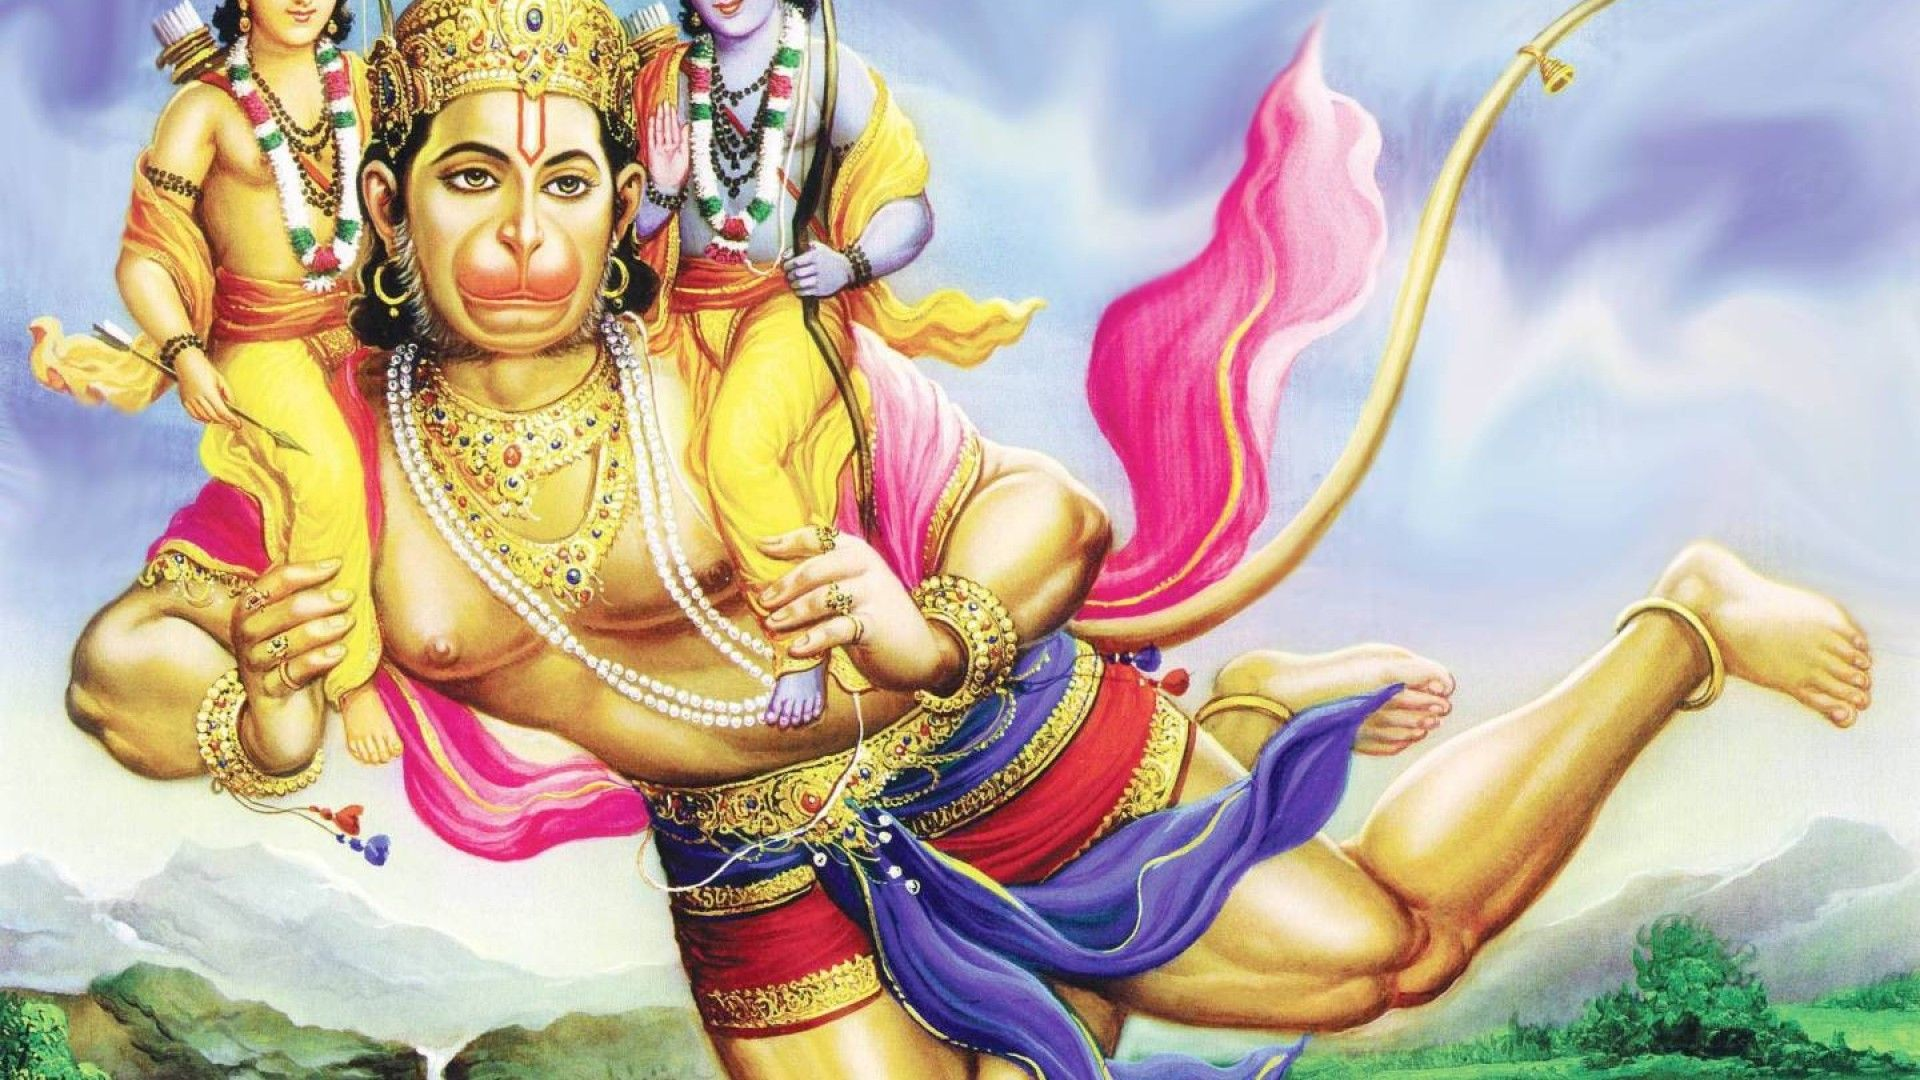 1920x1080 God Hanuman Hd Wallpaper 1920x1080 Hanuman Images Hanuman Wallpaper Lord Hanuman Wallpapers